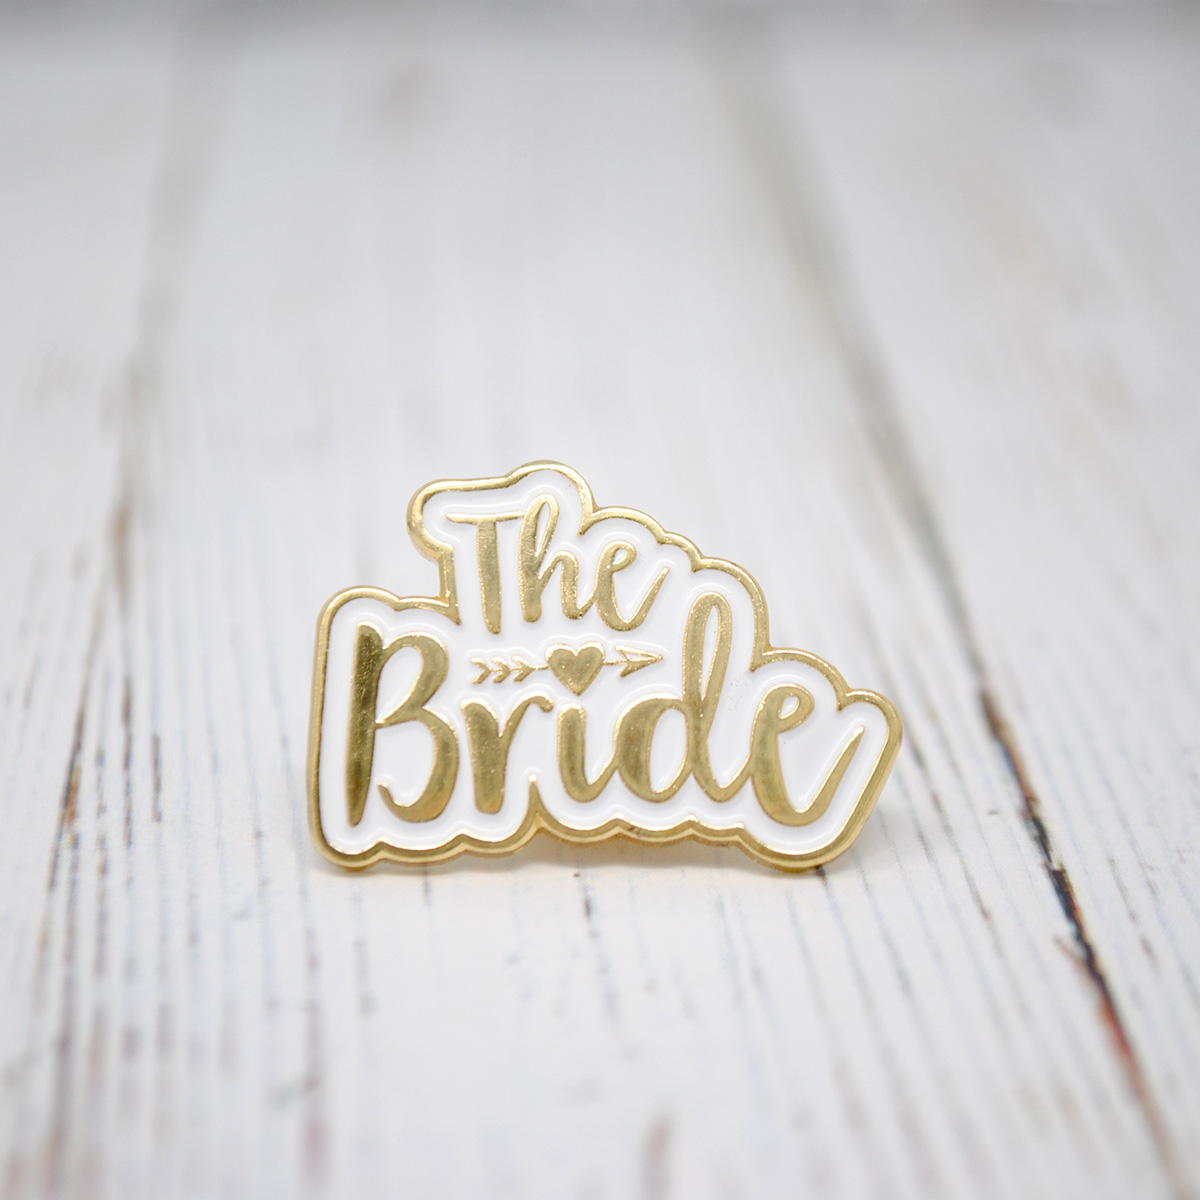 the bride wedding hen party enamel pin badge